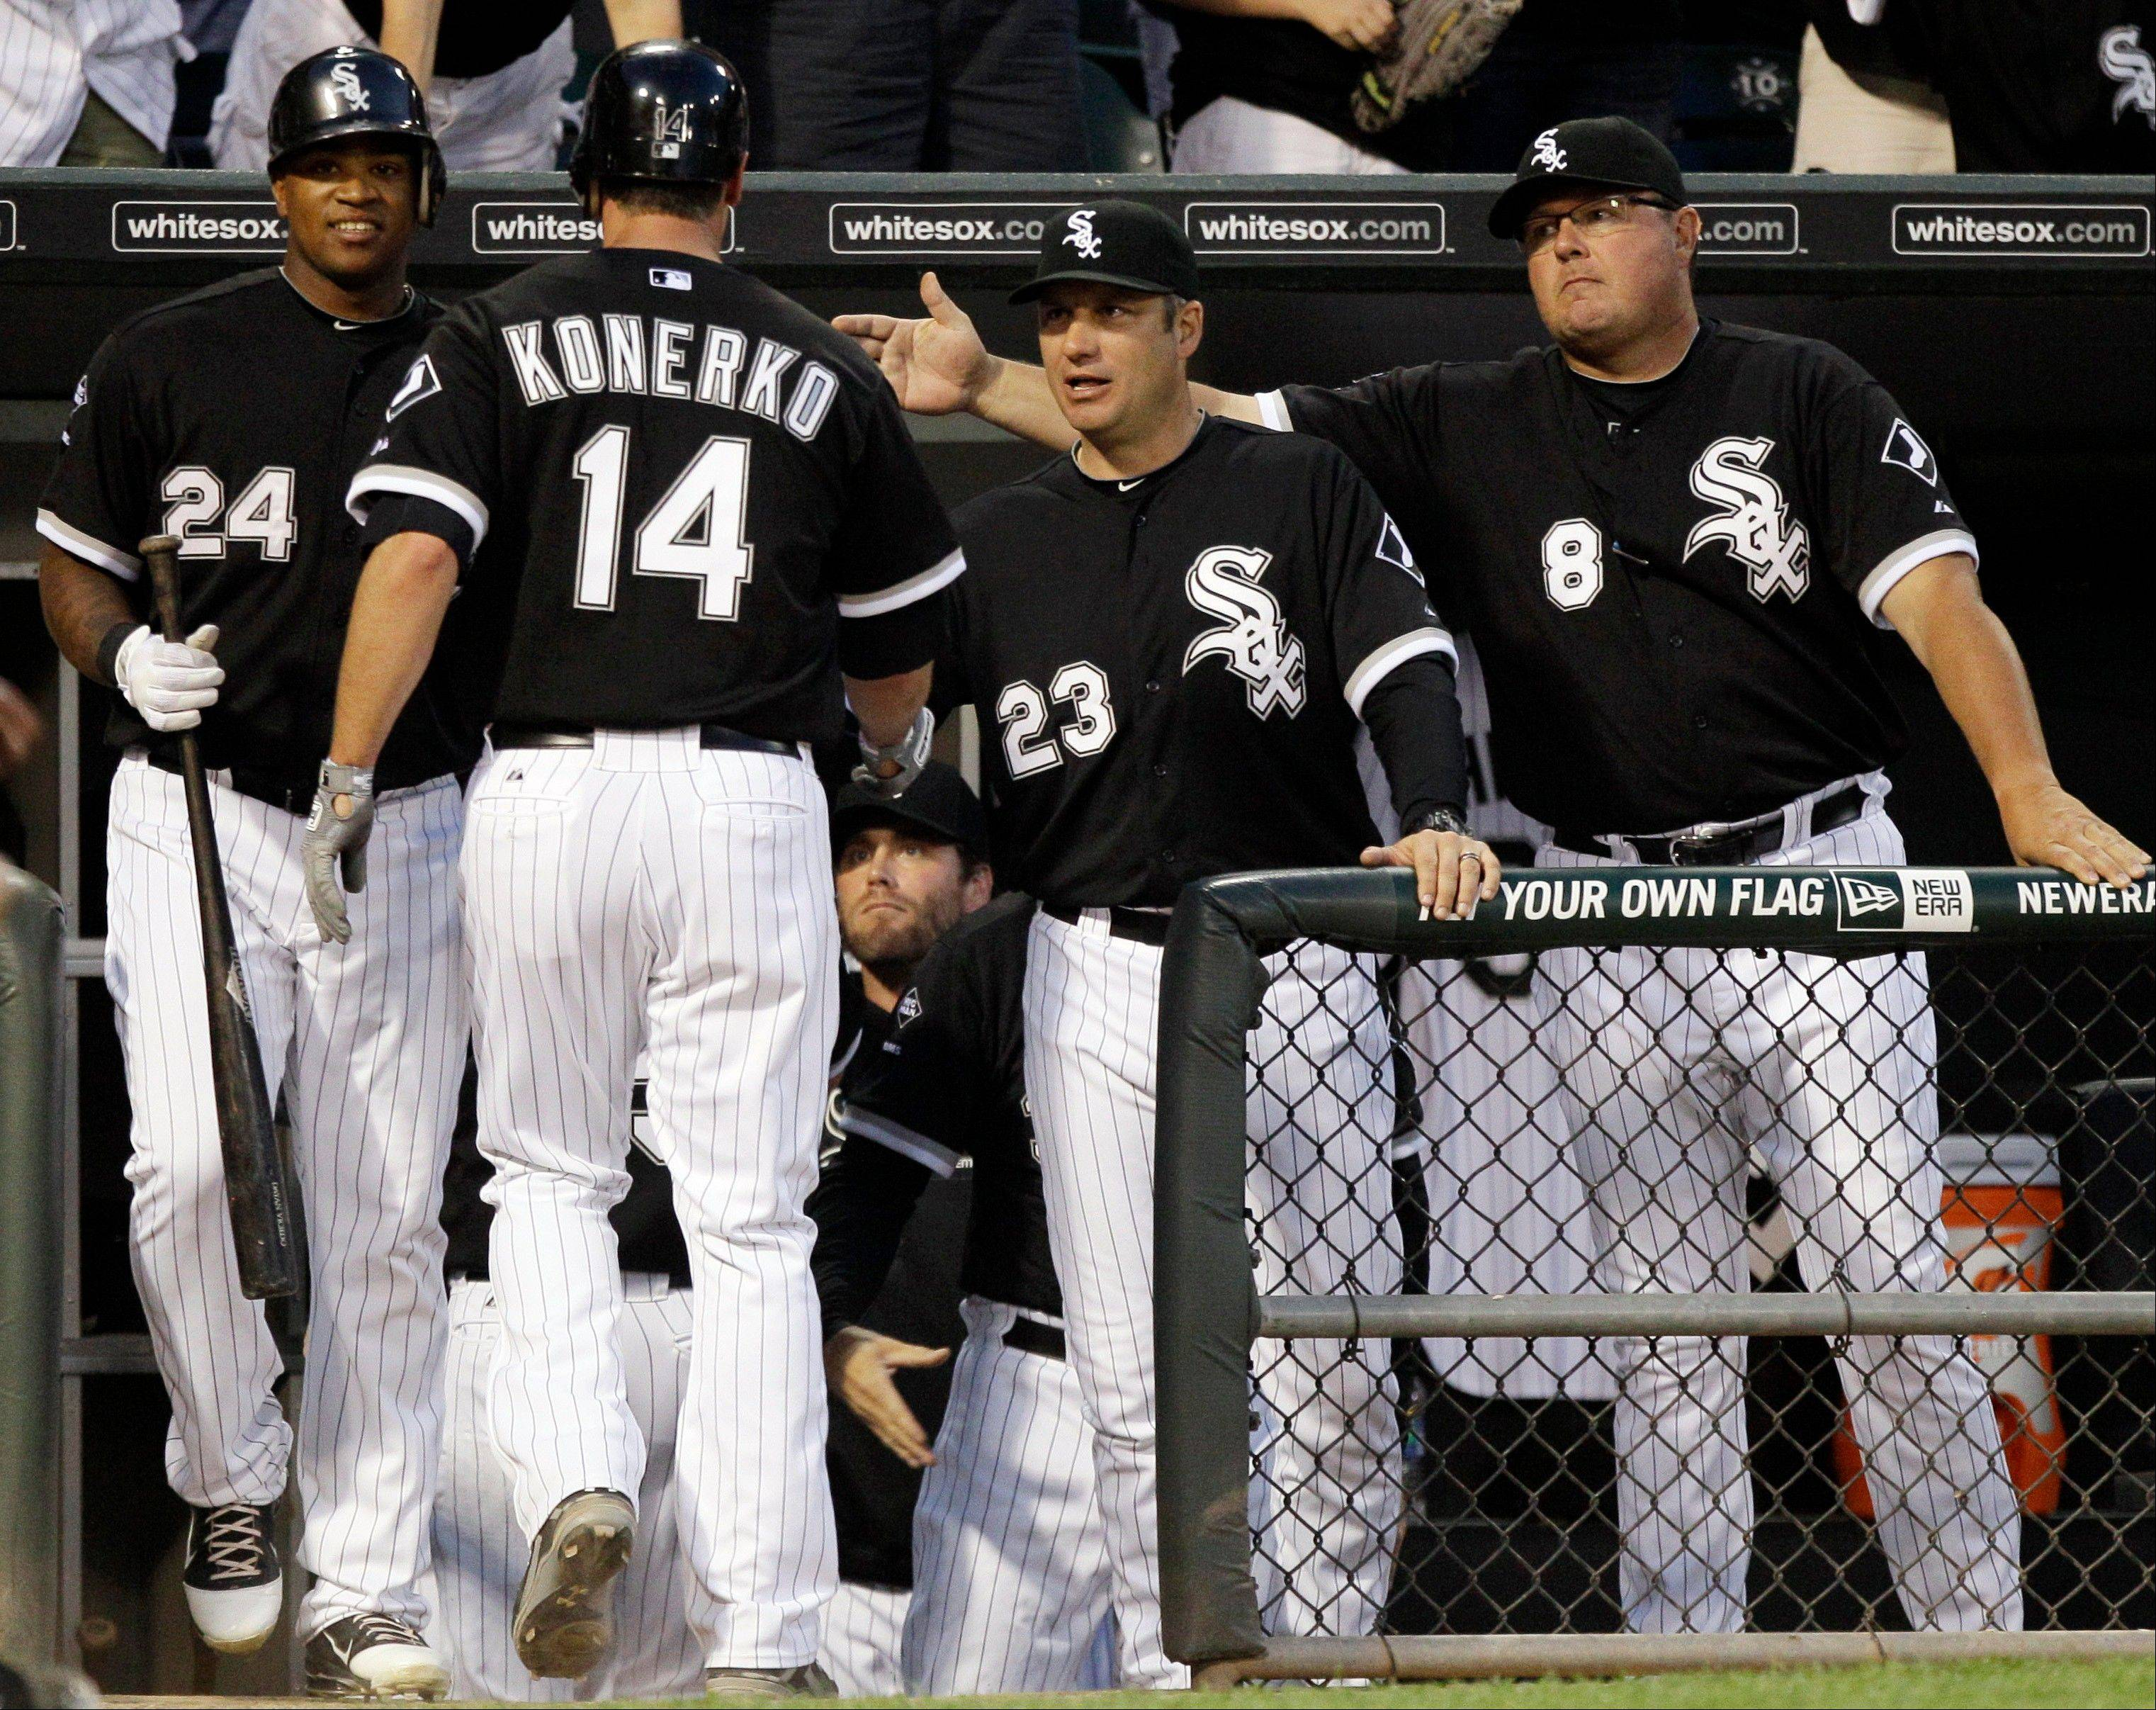 White Sox slugger Paul Konerko (14) is congratulated by manager Robin Ventura (23), bench coach Mark Parent (8) and Dayan Viciedo (24) after scoring on a double by Alex Rios (51) during the third inning of a baseball game against the Minnesota Twins in Chicago, Thursday, May 24, 2012.